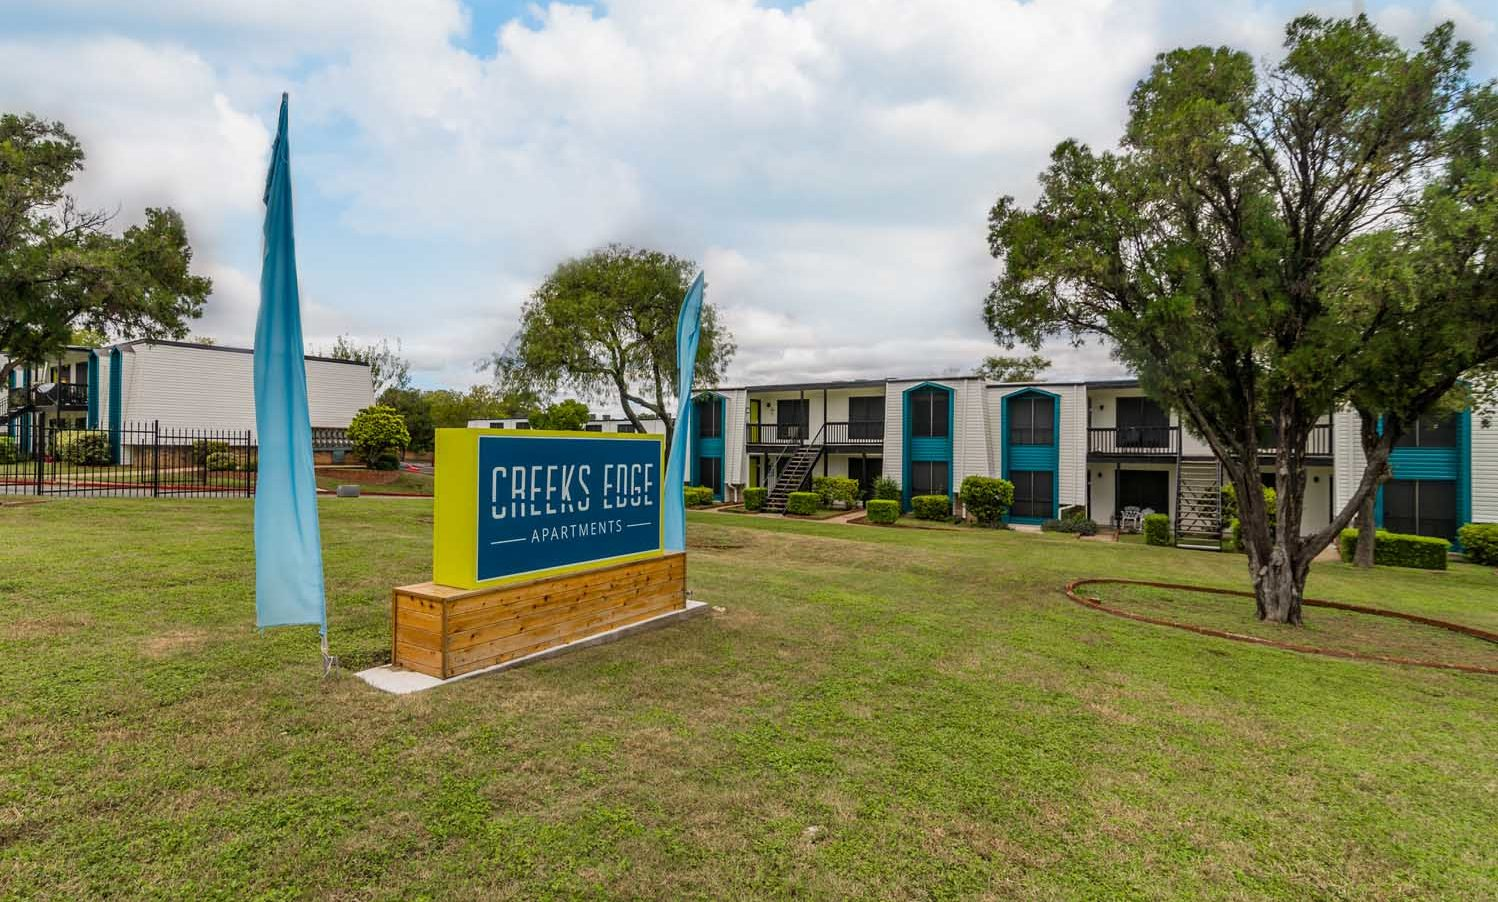 Image of Creeks Edge Apartments in Austin, Texas